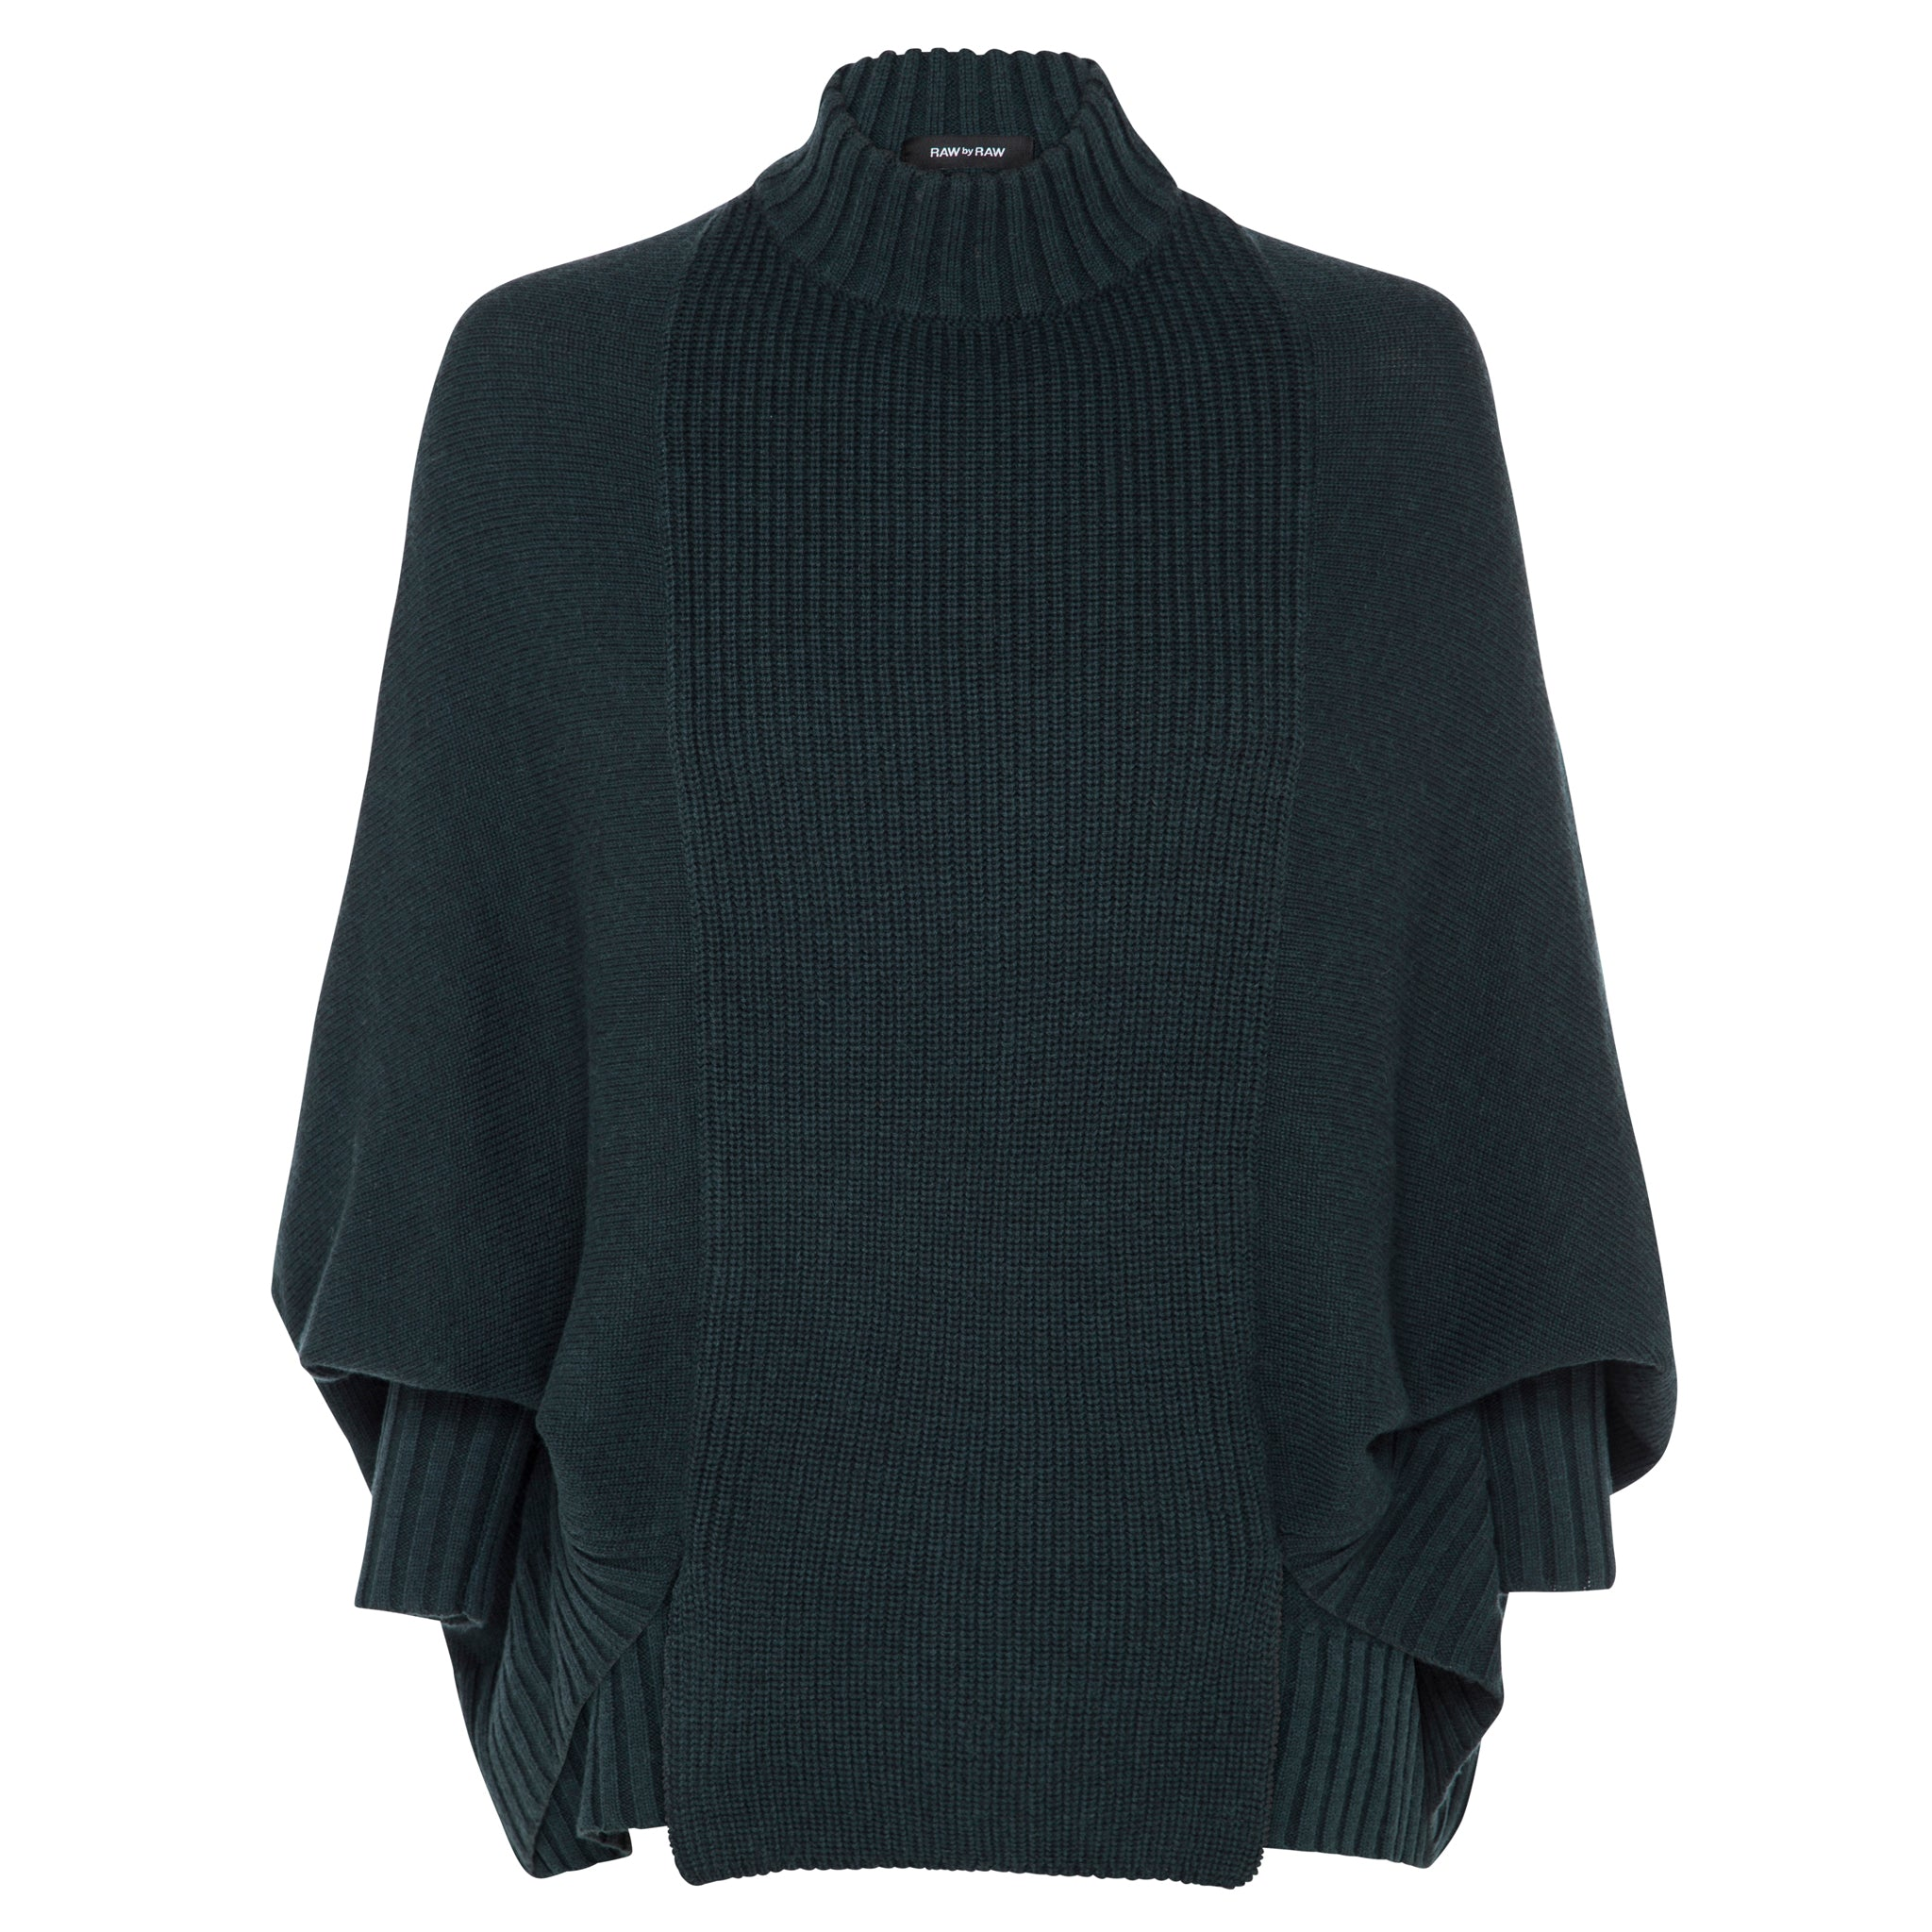 Antonia Knit - Teal